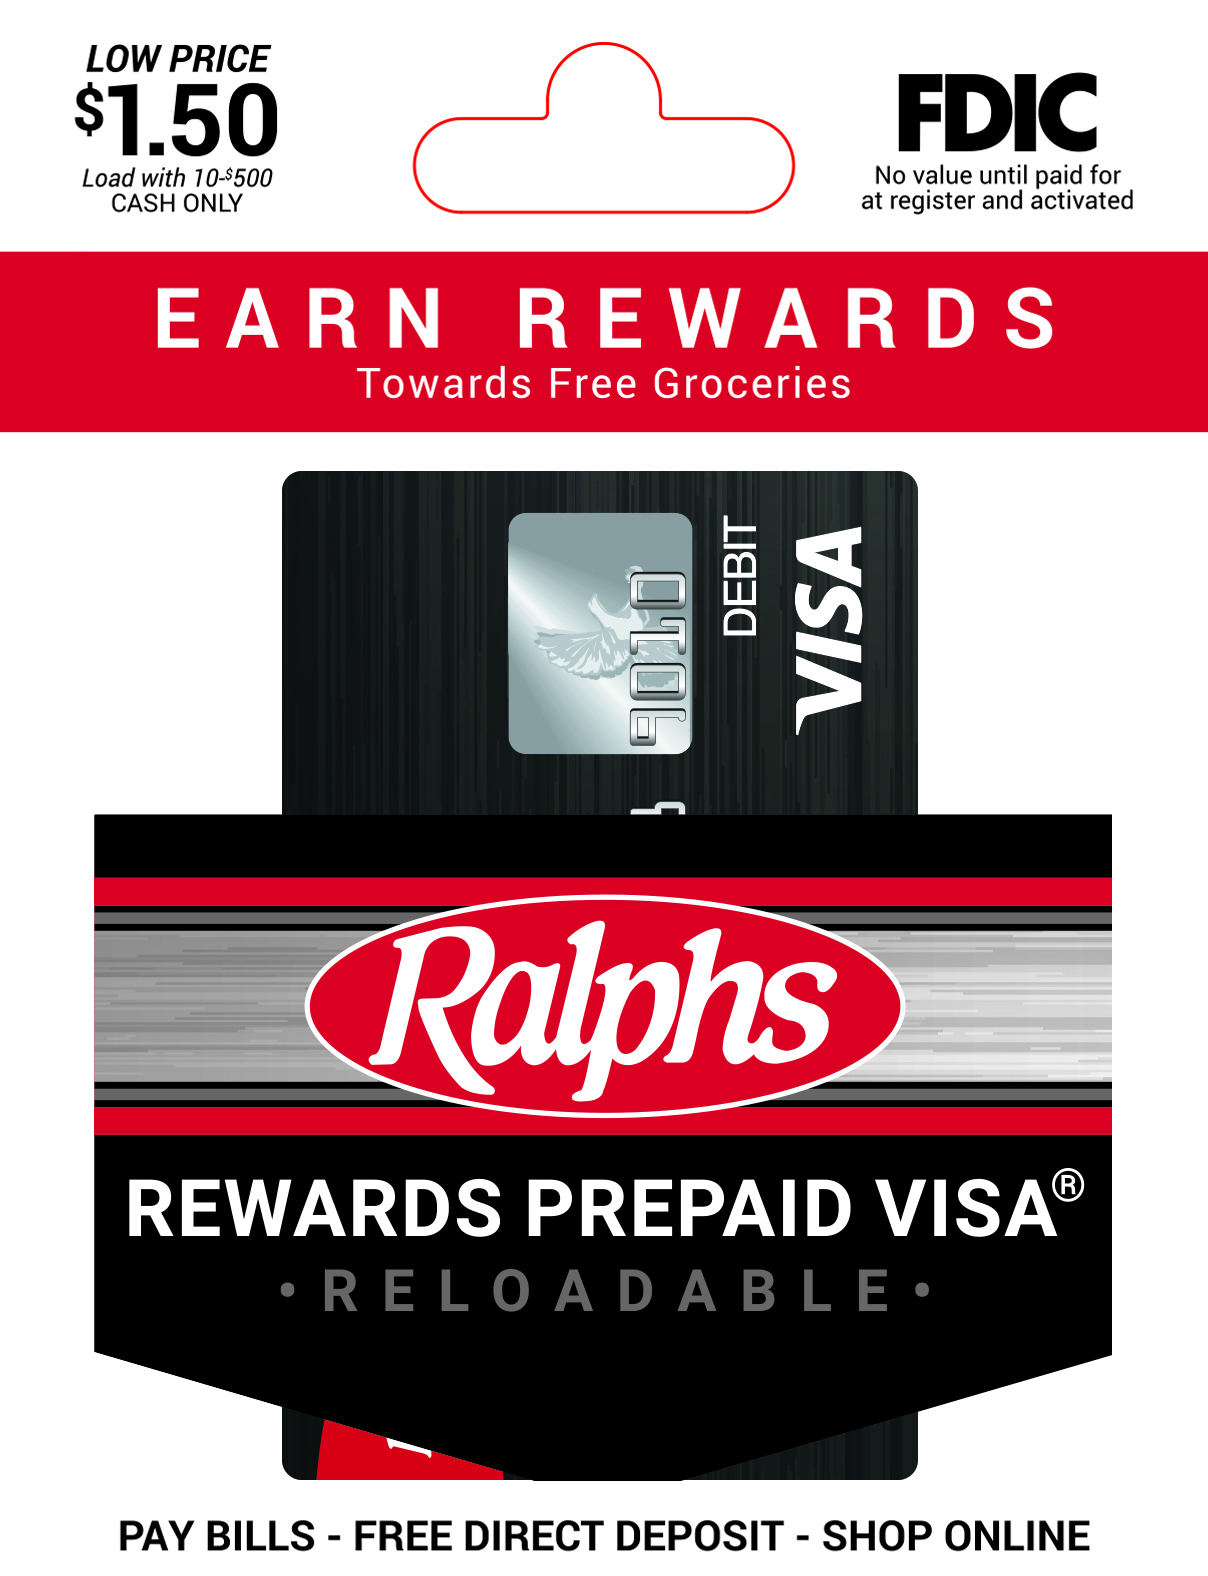 Ralphs Rewards Prepaid Visa Temporary Card Packaging